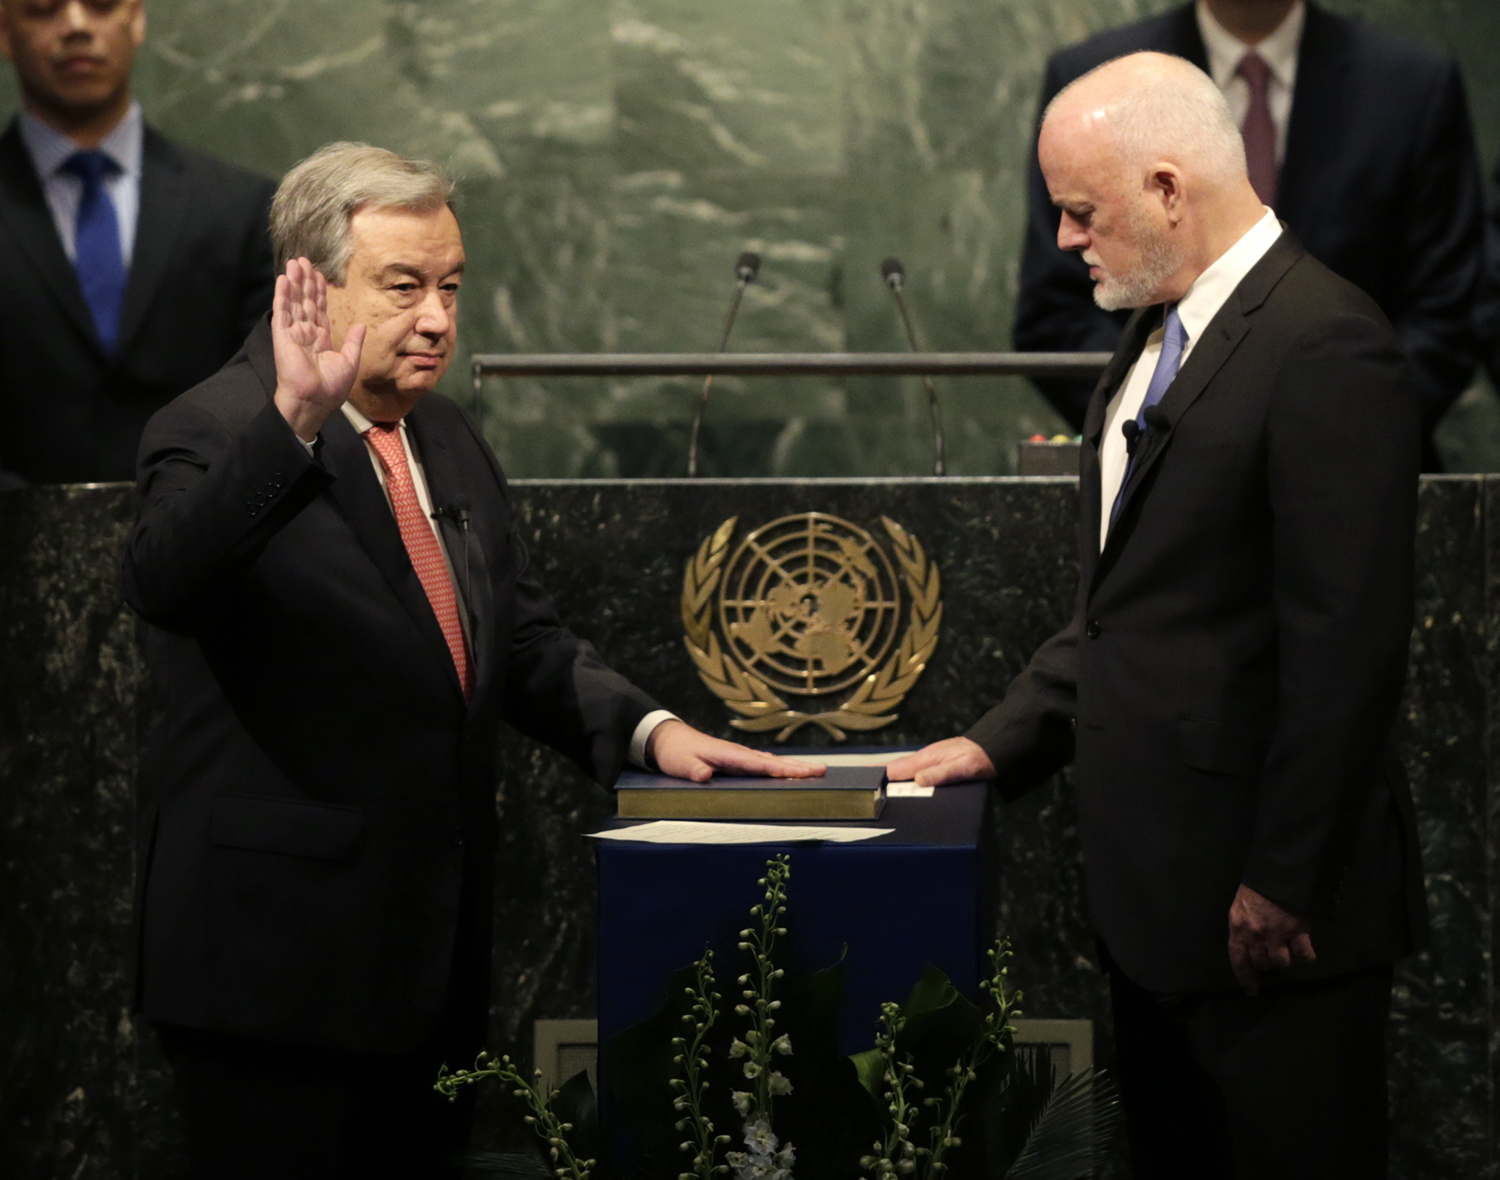 The United Nations Secretary-General designate Antonio Guterres, left, is sworn in by Peter Thomson, president of the UN General Assembly, at U.N. headquarters, Monday, Dec. 12, 2016. (AP Photo/Seth Wenig)